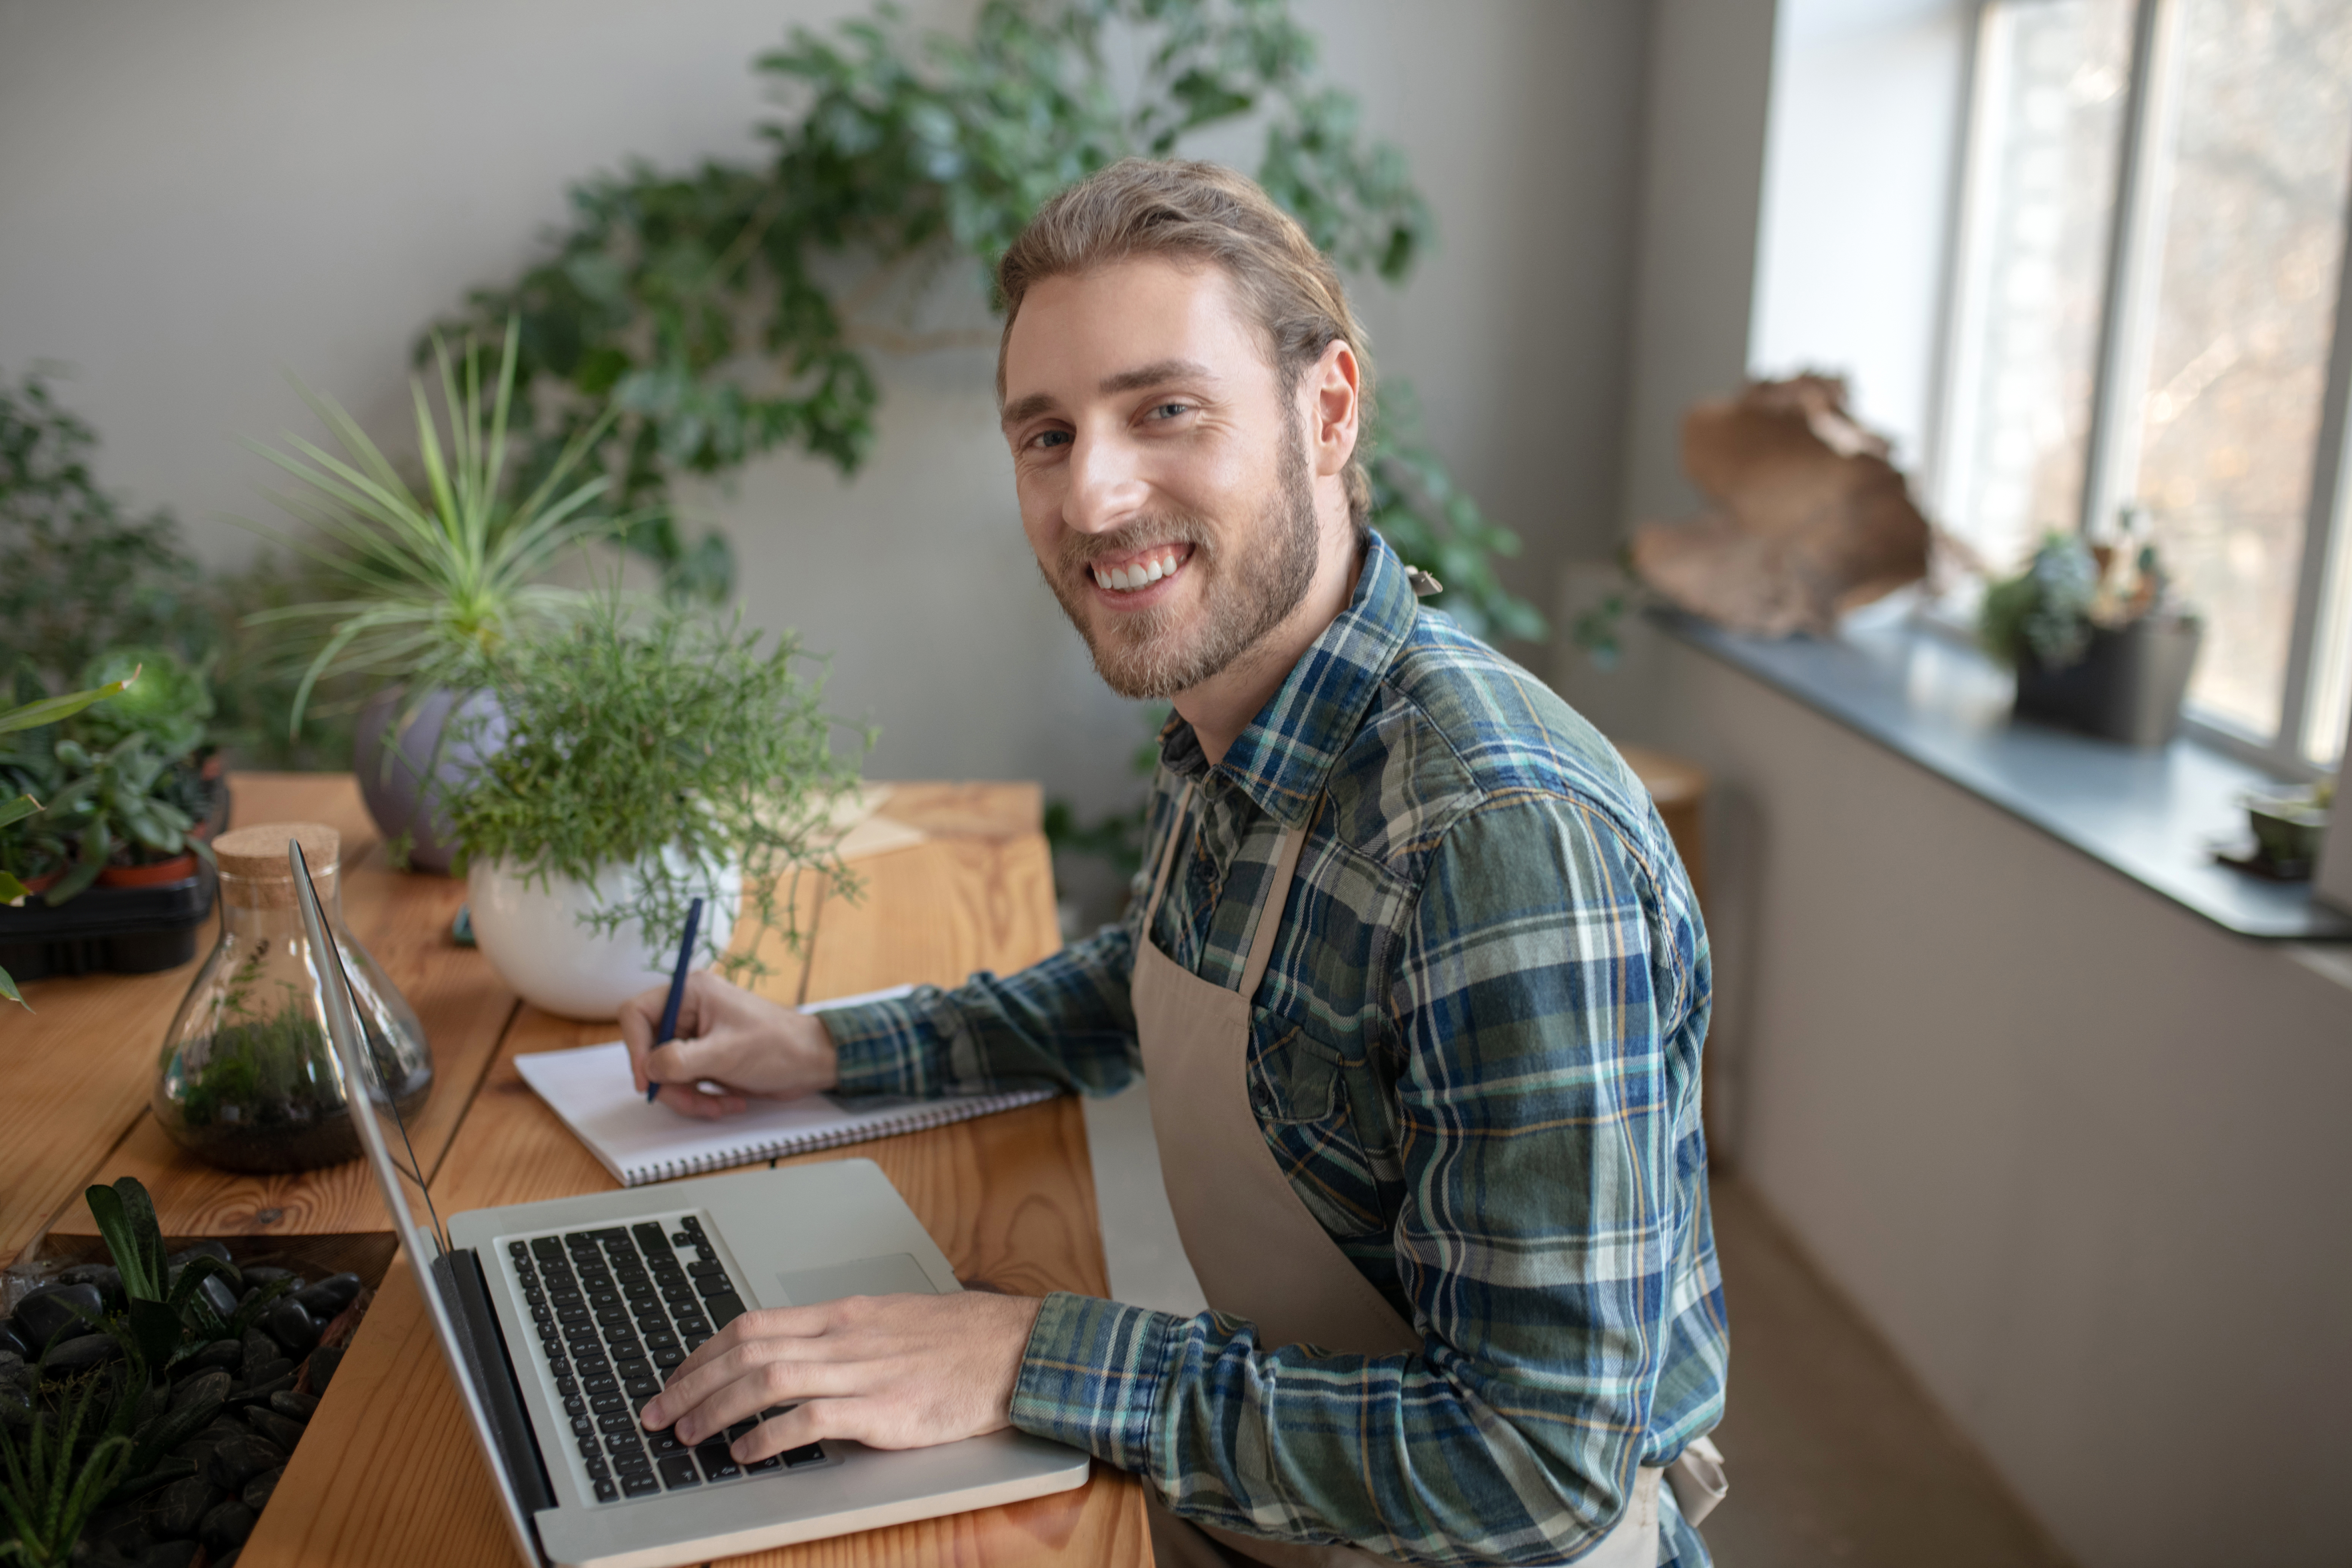 smiling-man-working-with-a-laptop-and-a-notebook-WS4Y74D.jpg